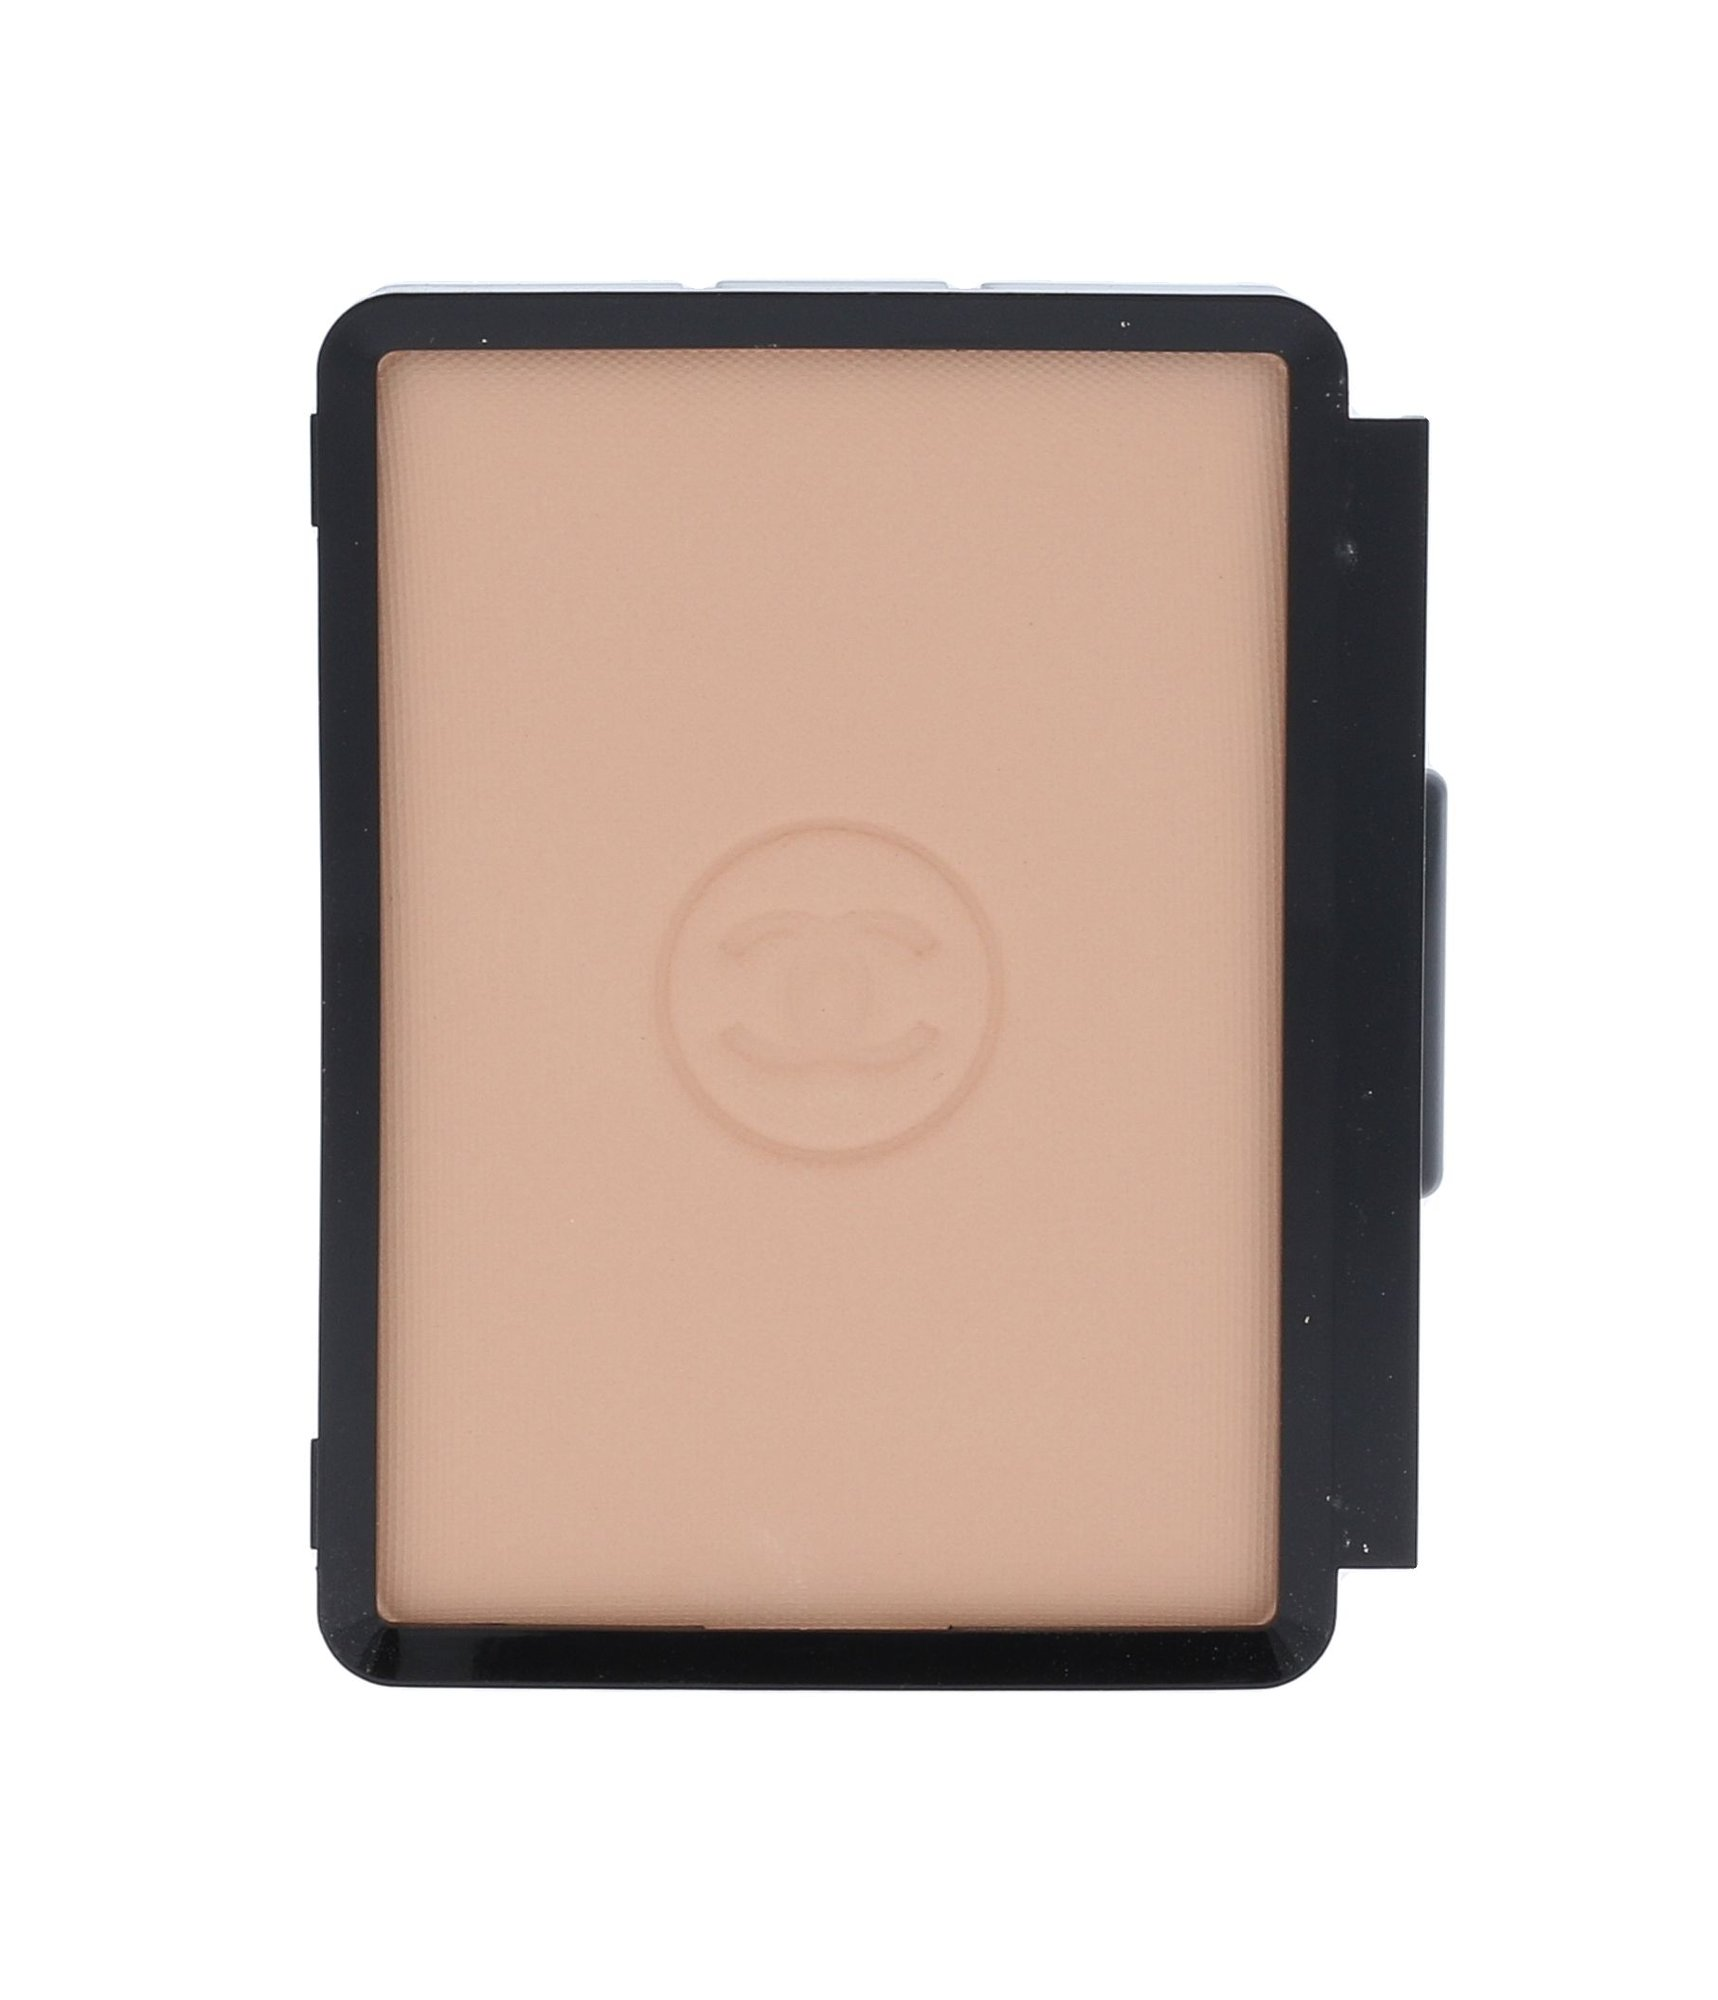 Chanel Mat Lumiere Cosmetic 13ml 70 Pastel